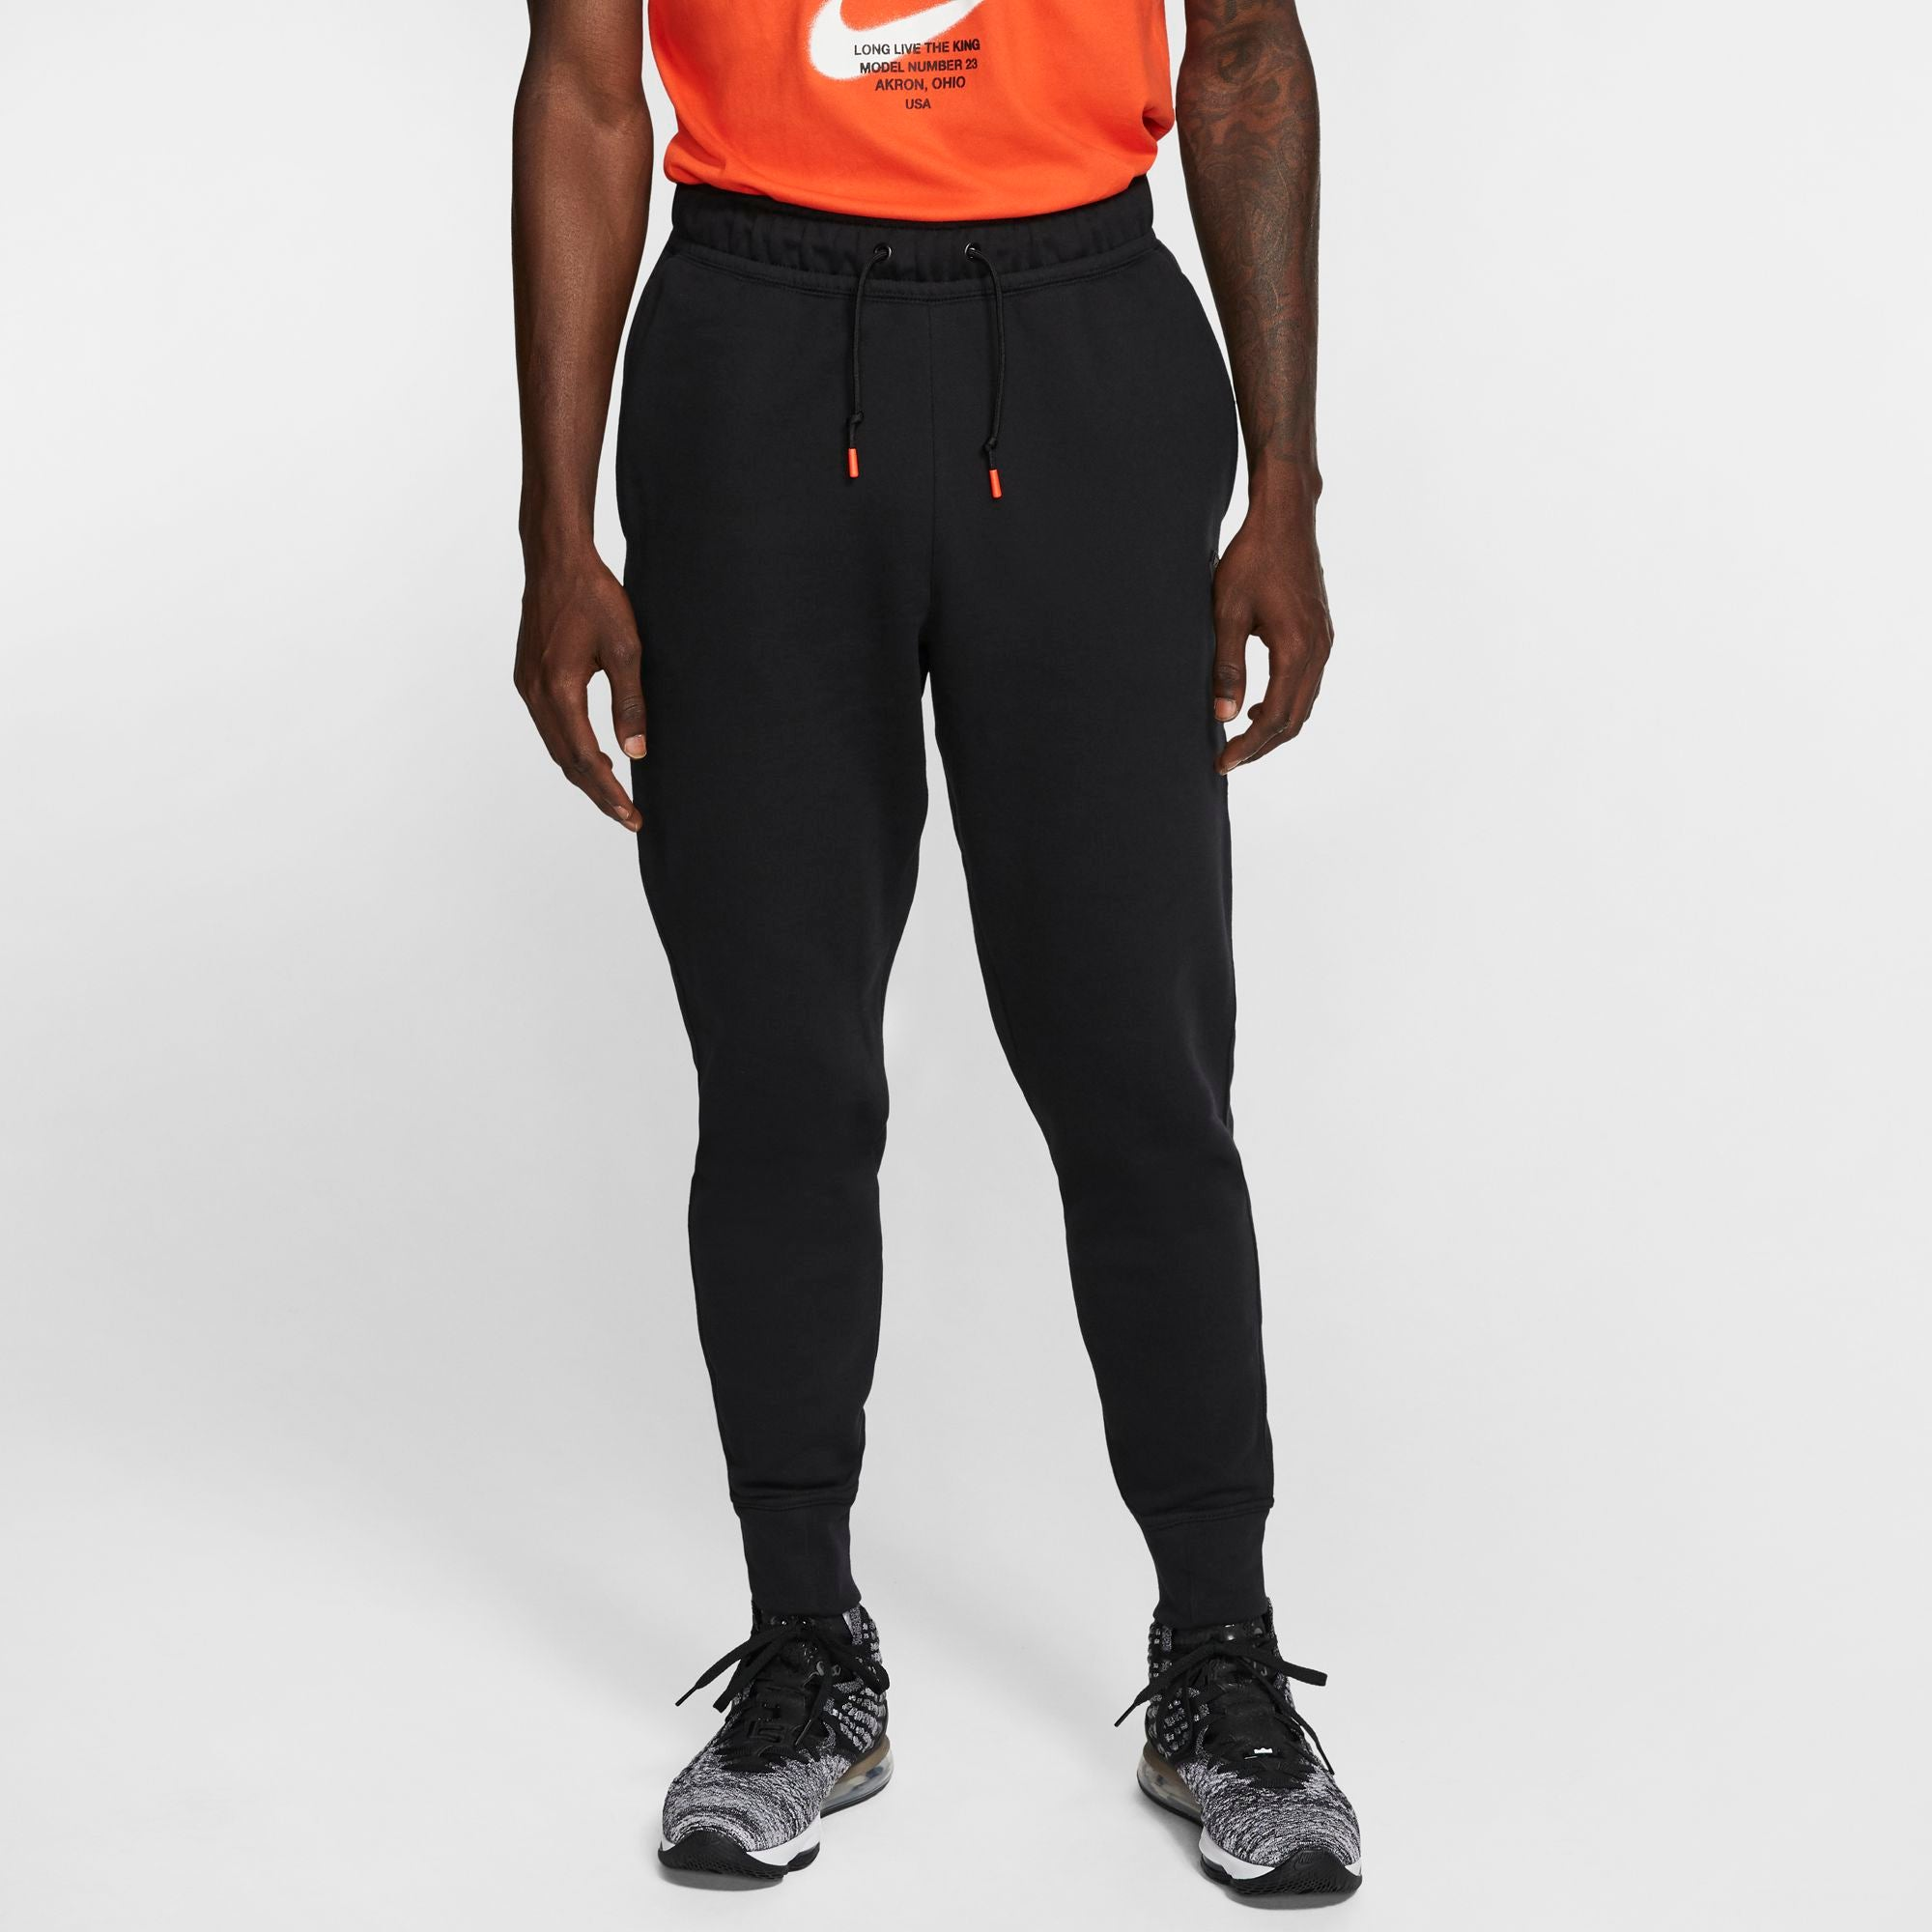 Nike Lebron Fleece Basketball Pants - Black/Team Orange